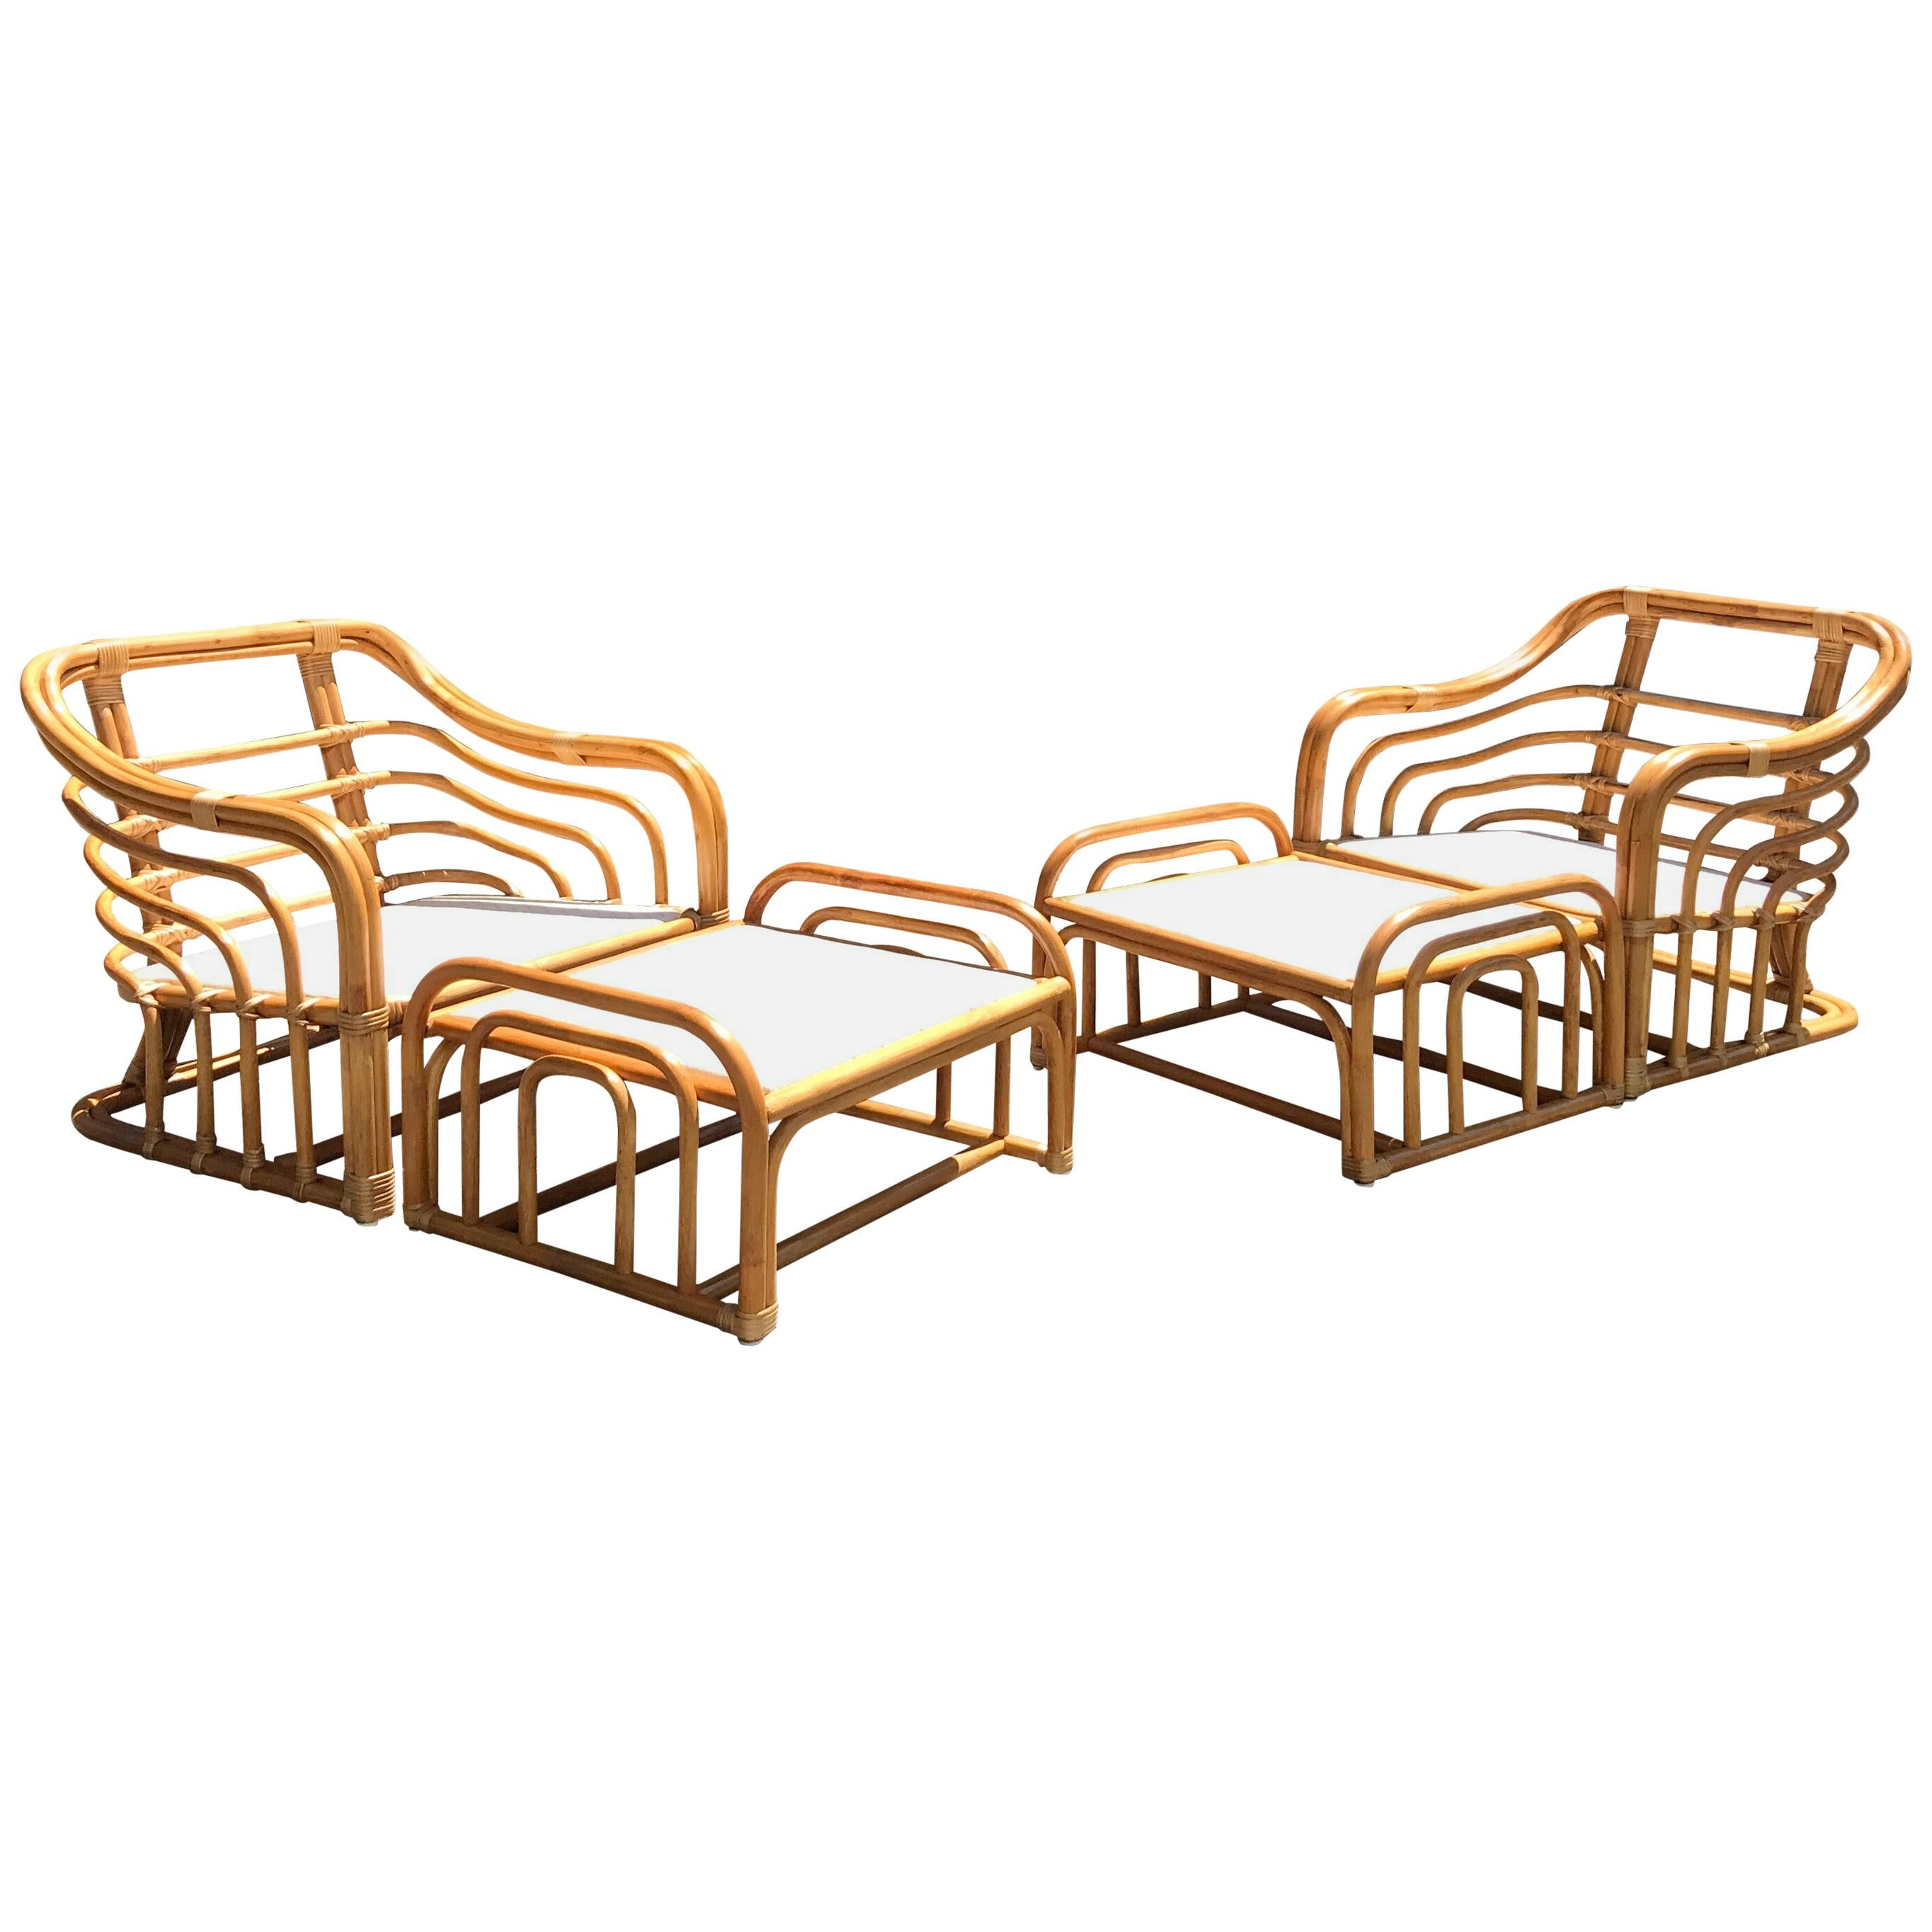 Admirable Vintage Brown Jordan Rattan Lounge Chairs With Ottomans For Evergreenethics Interior Chair Design Evergreenethicsorg